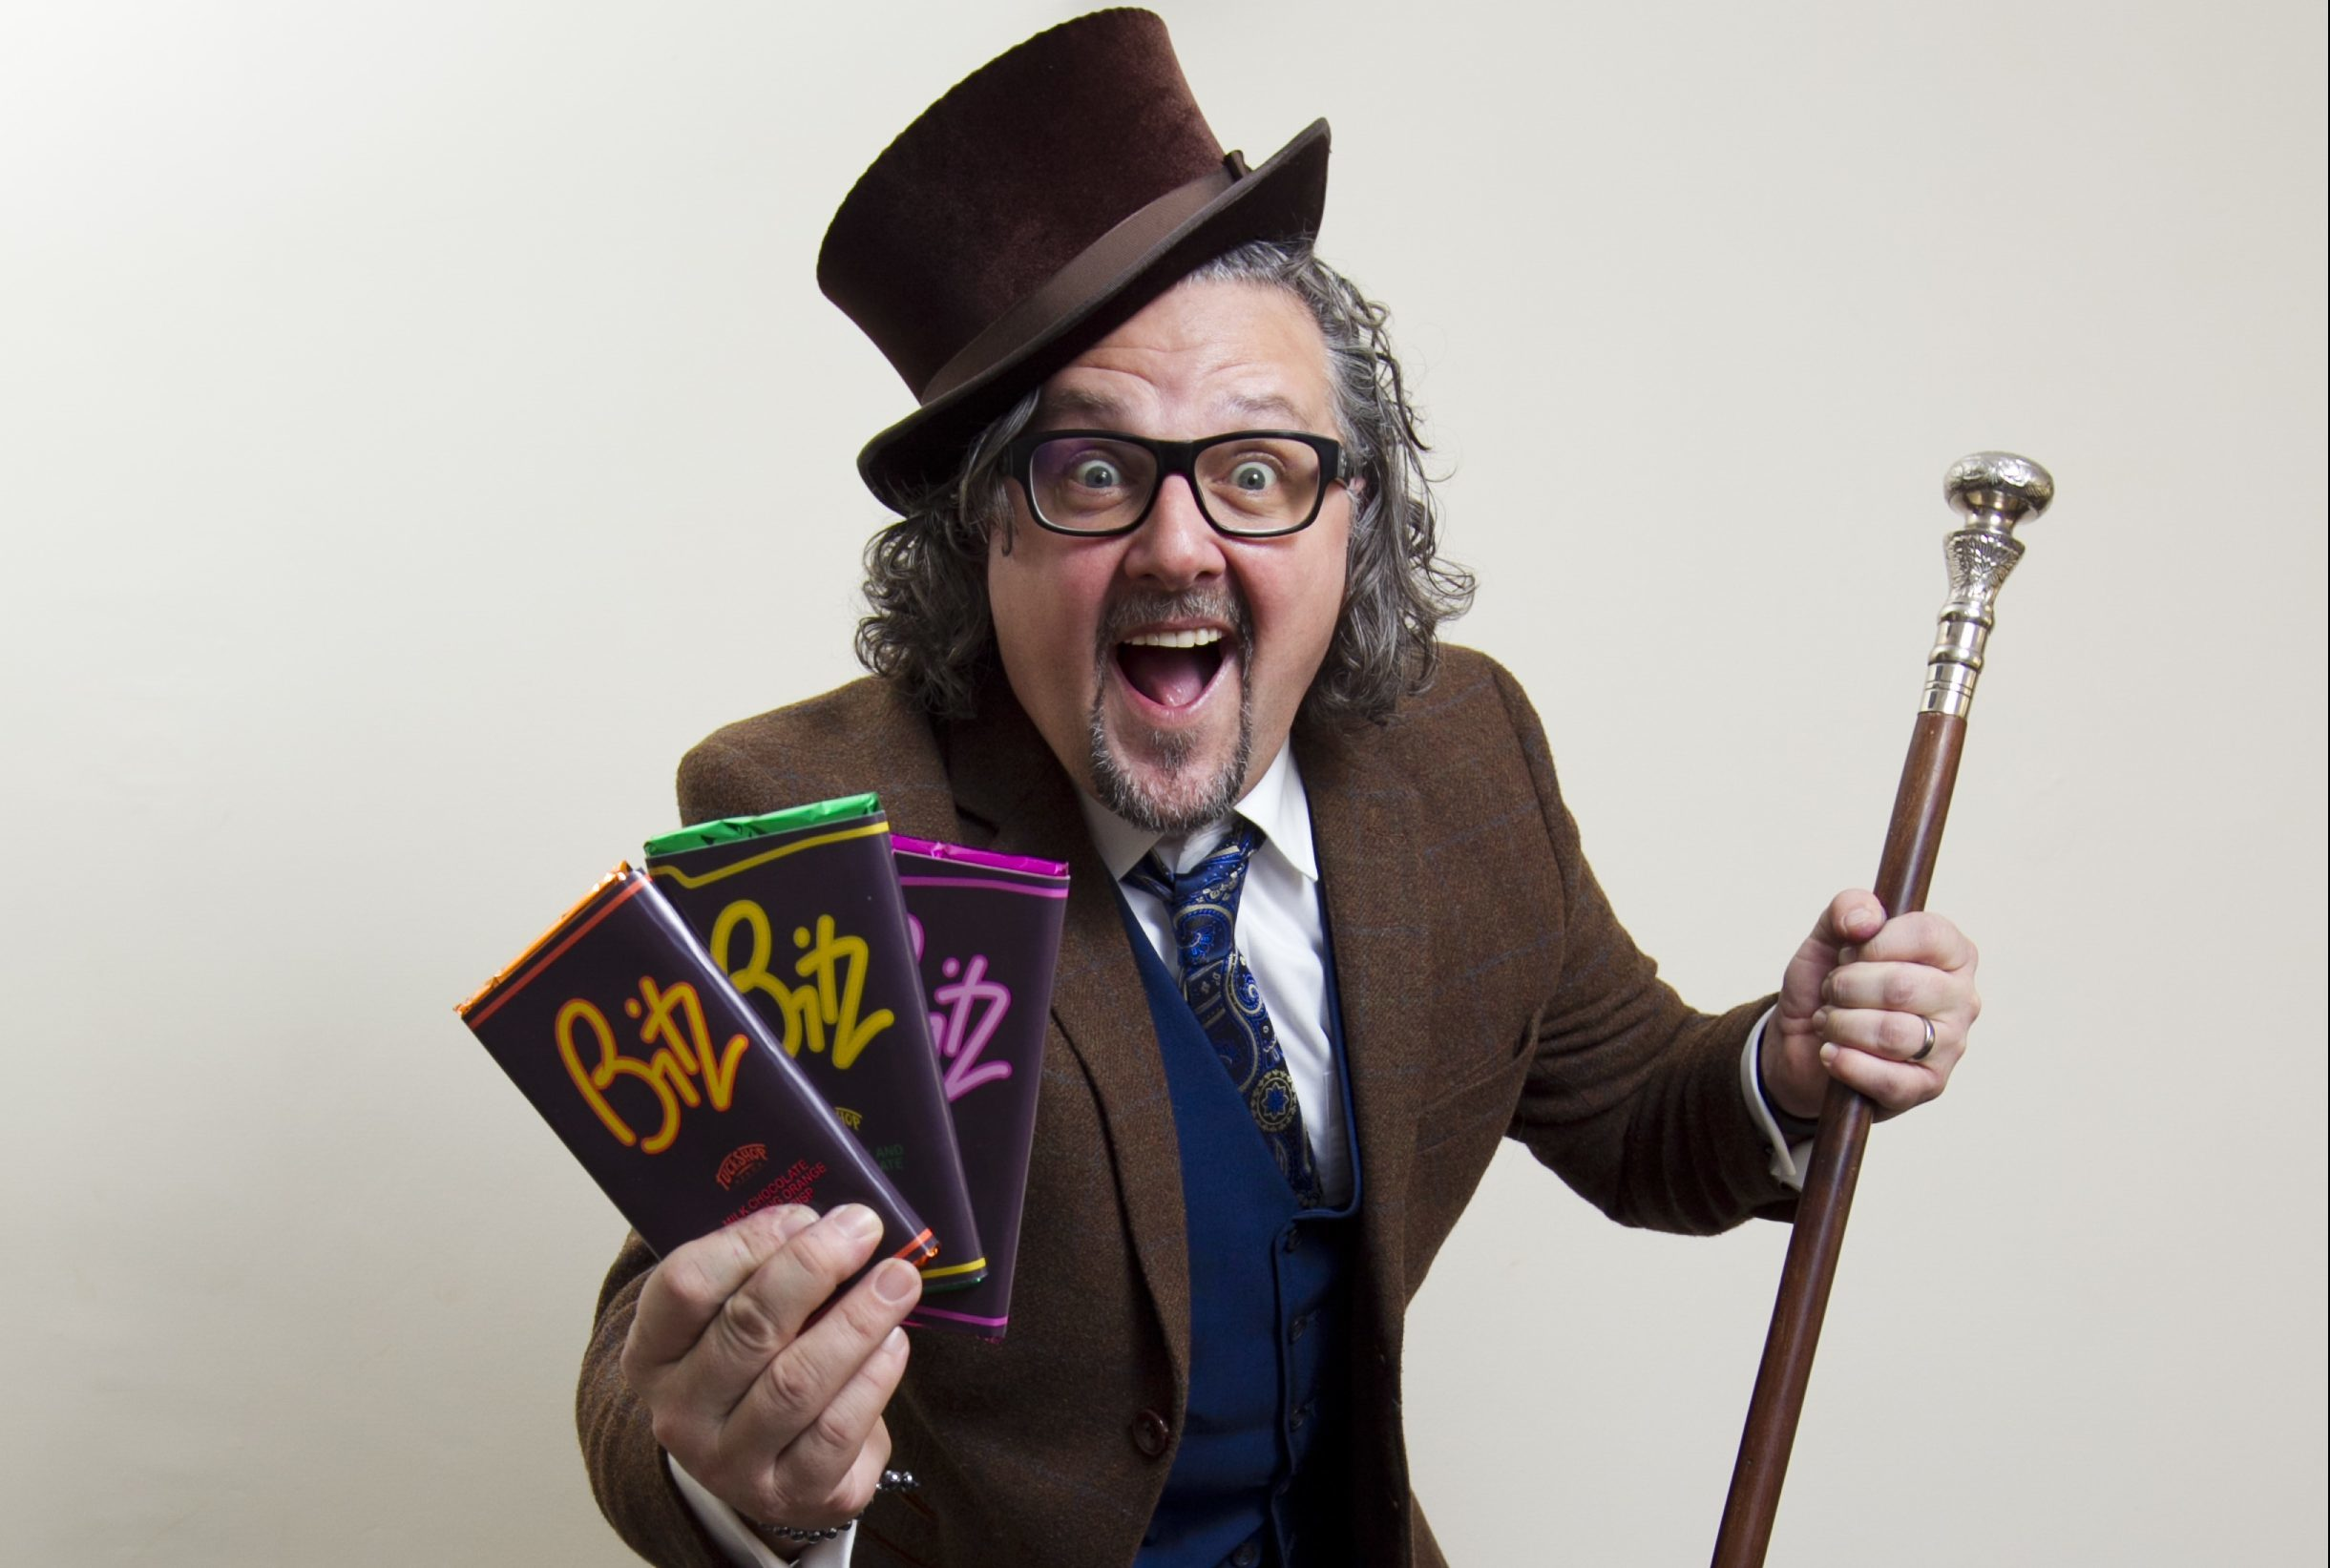 Roddy Nichol (aka Willy Wonka) who makes old retro sweets and chocolate. (Andrew Cawley/Dc Thomson)